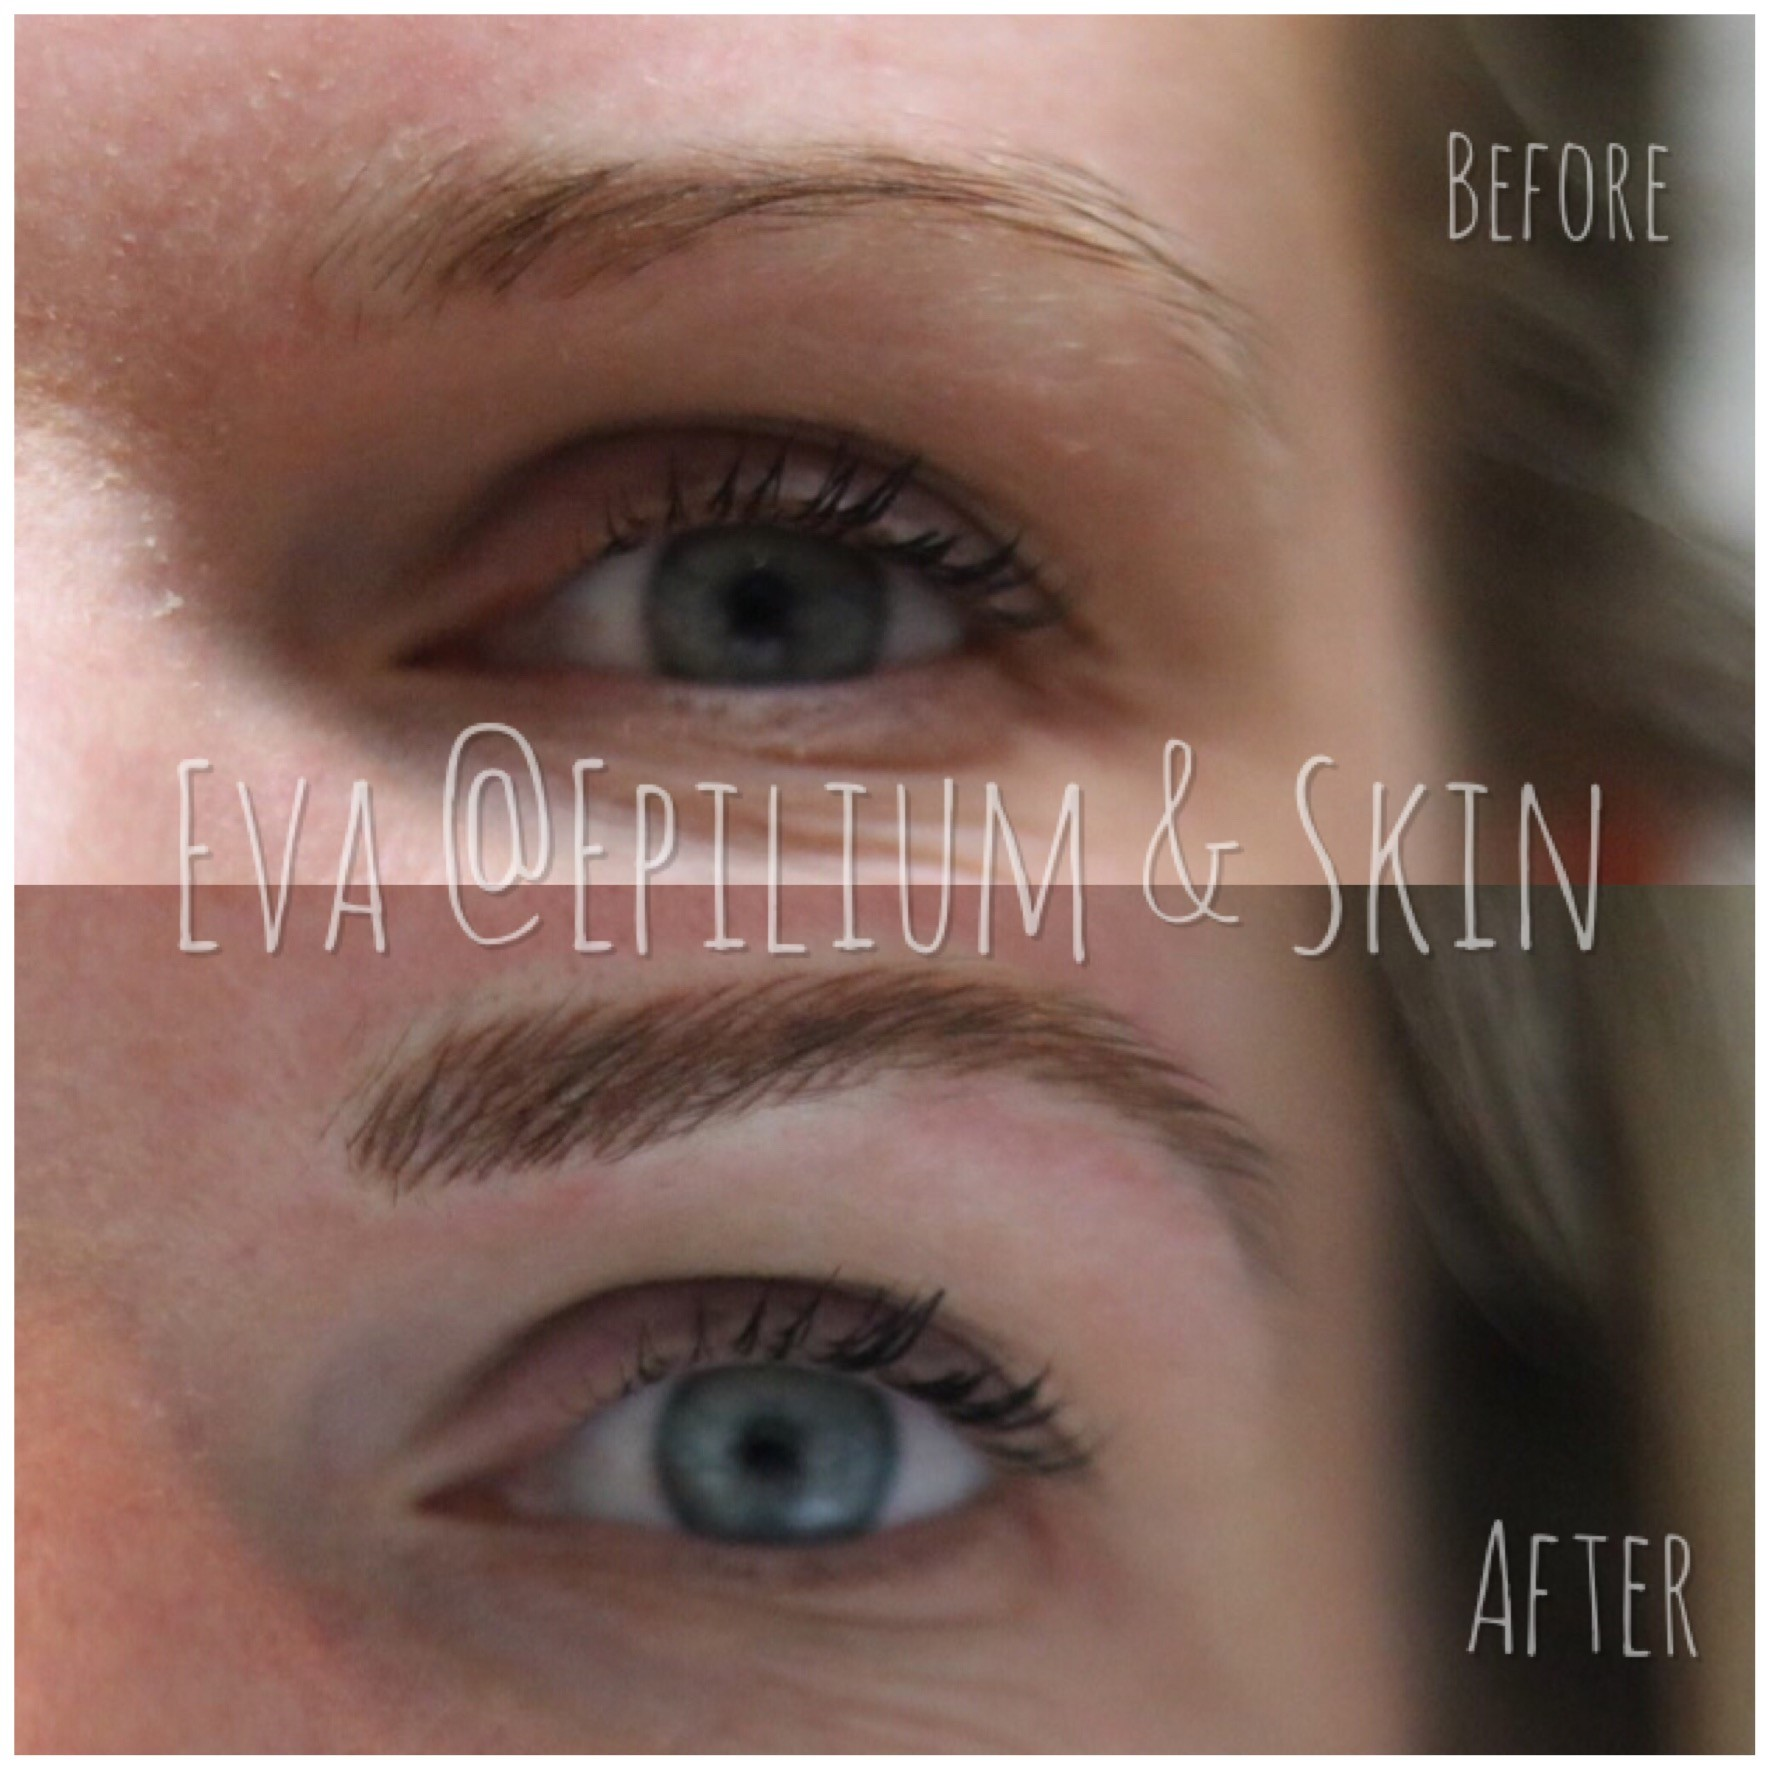 Before and after woman's eyebrows after microblading micropigmentation semi permanent Makeup treatment